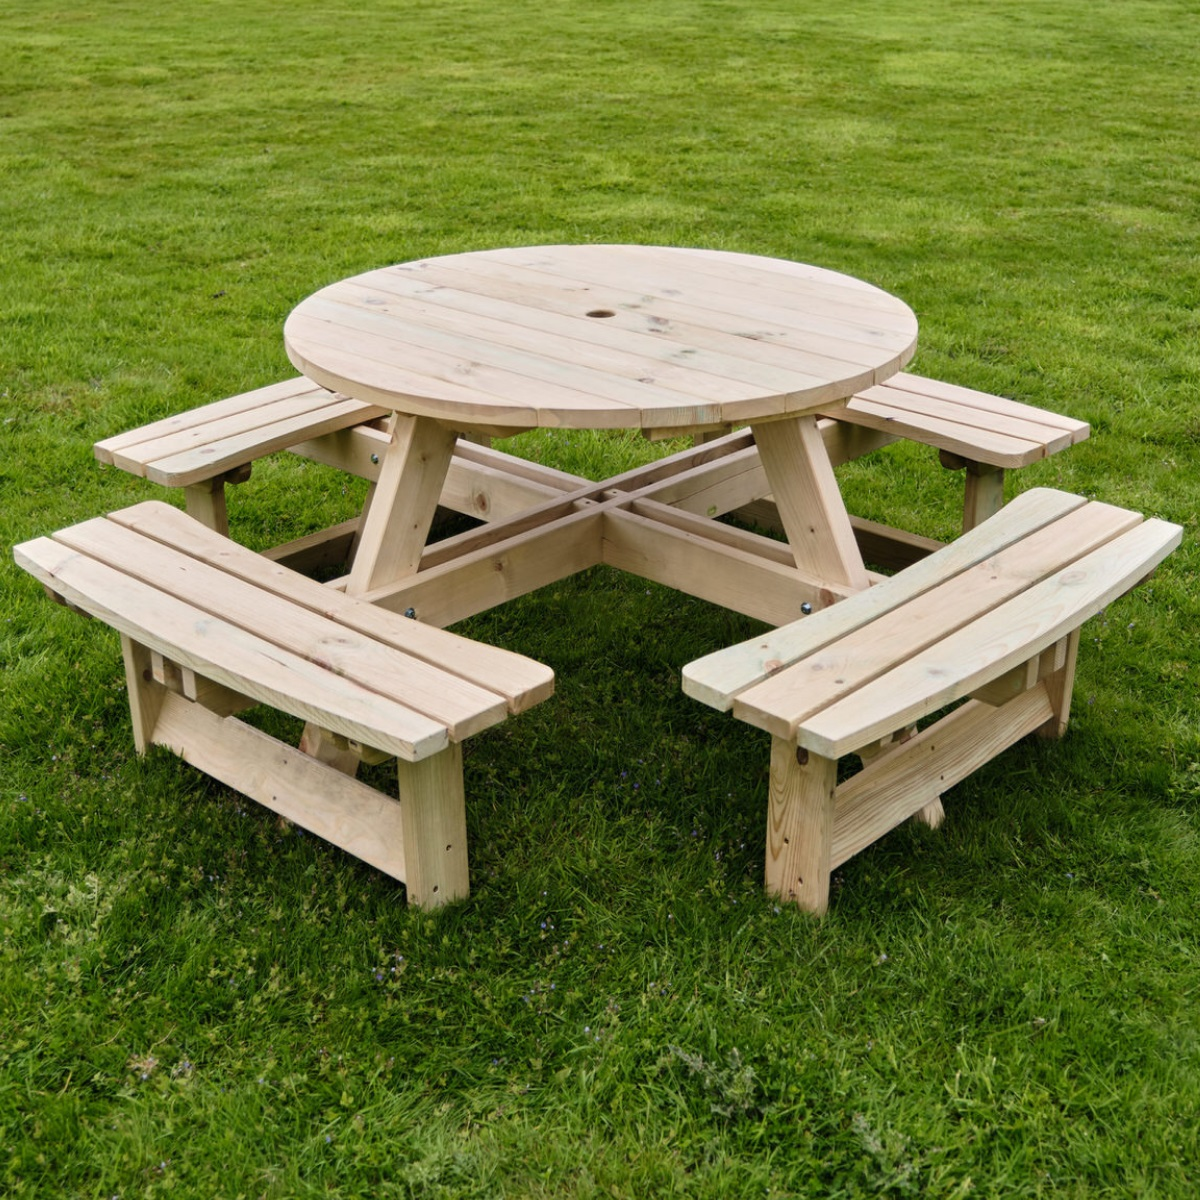 commercial round wooden picnic table 8 seater